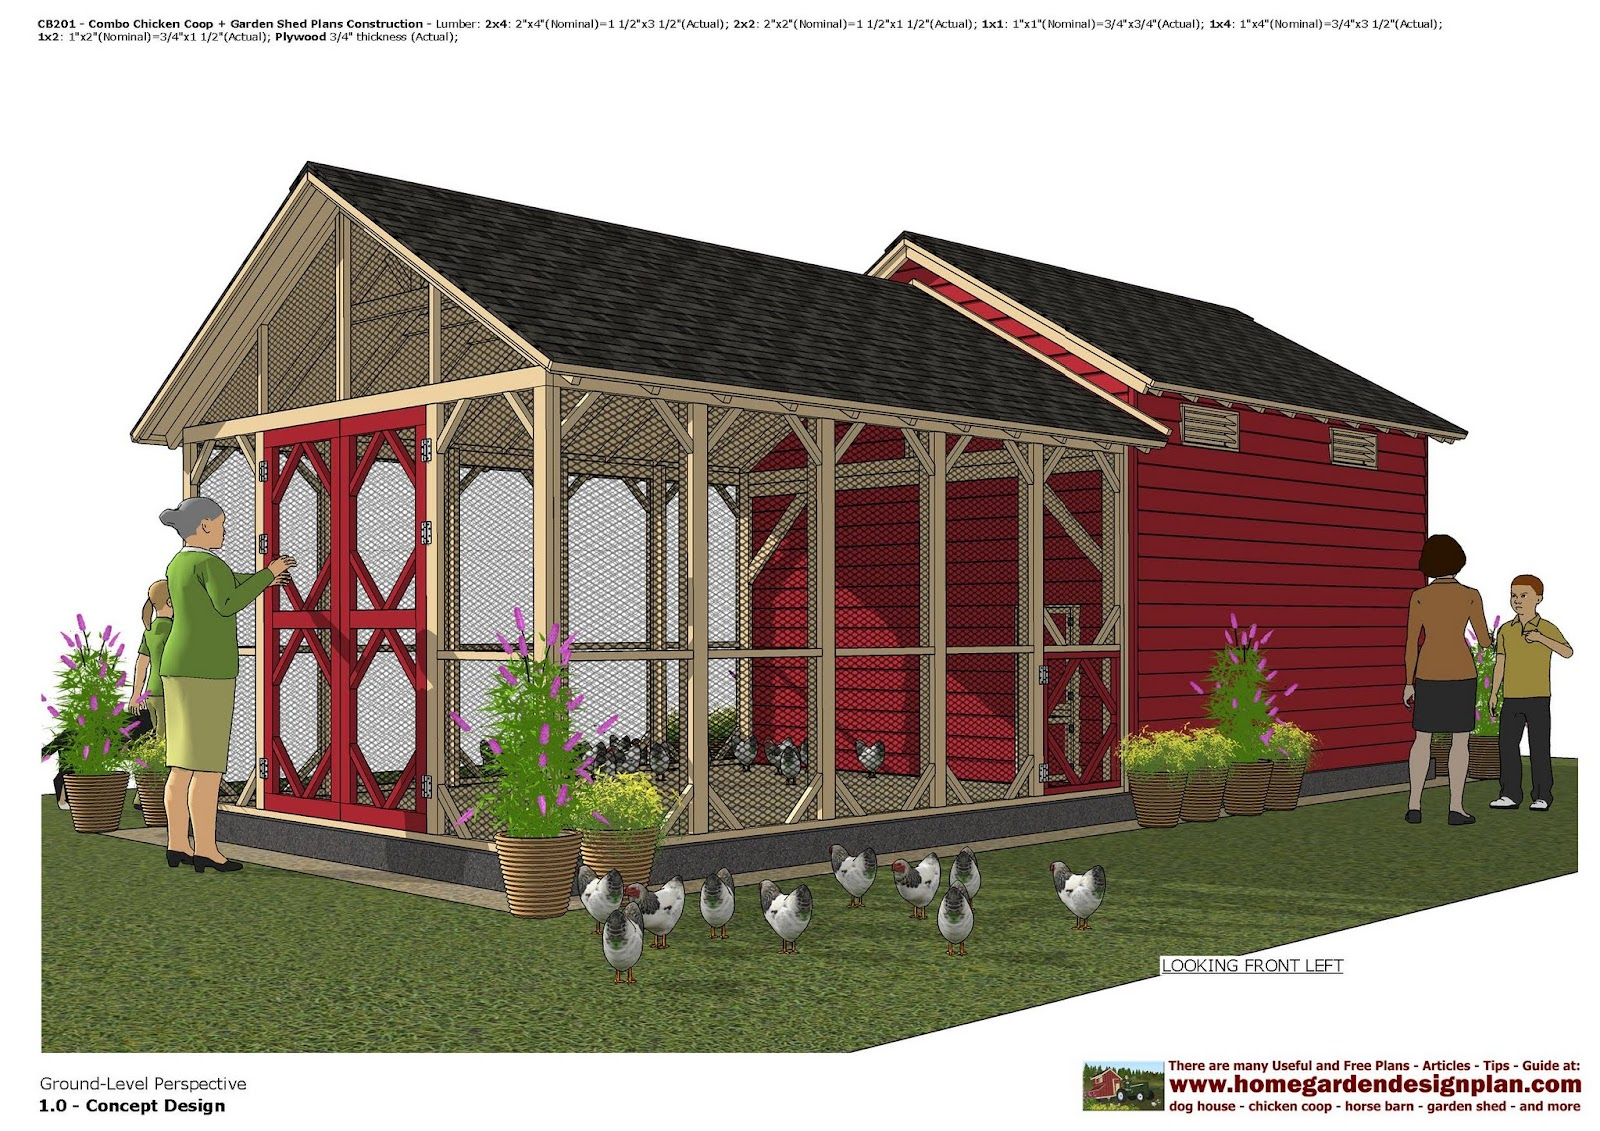 Garden Sheds 3 X 4 home garden plans: cb201 _ combo chicken coop + garden shed plans